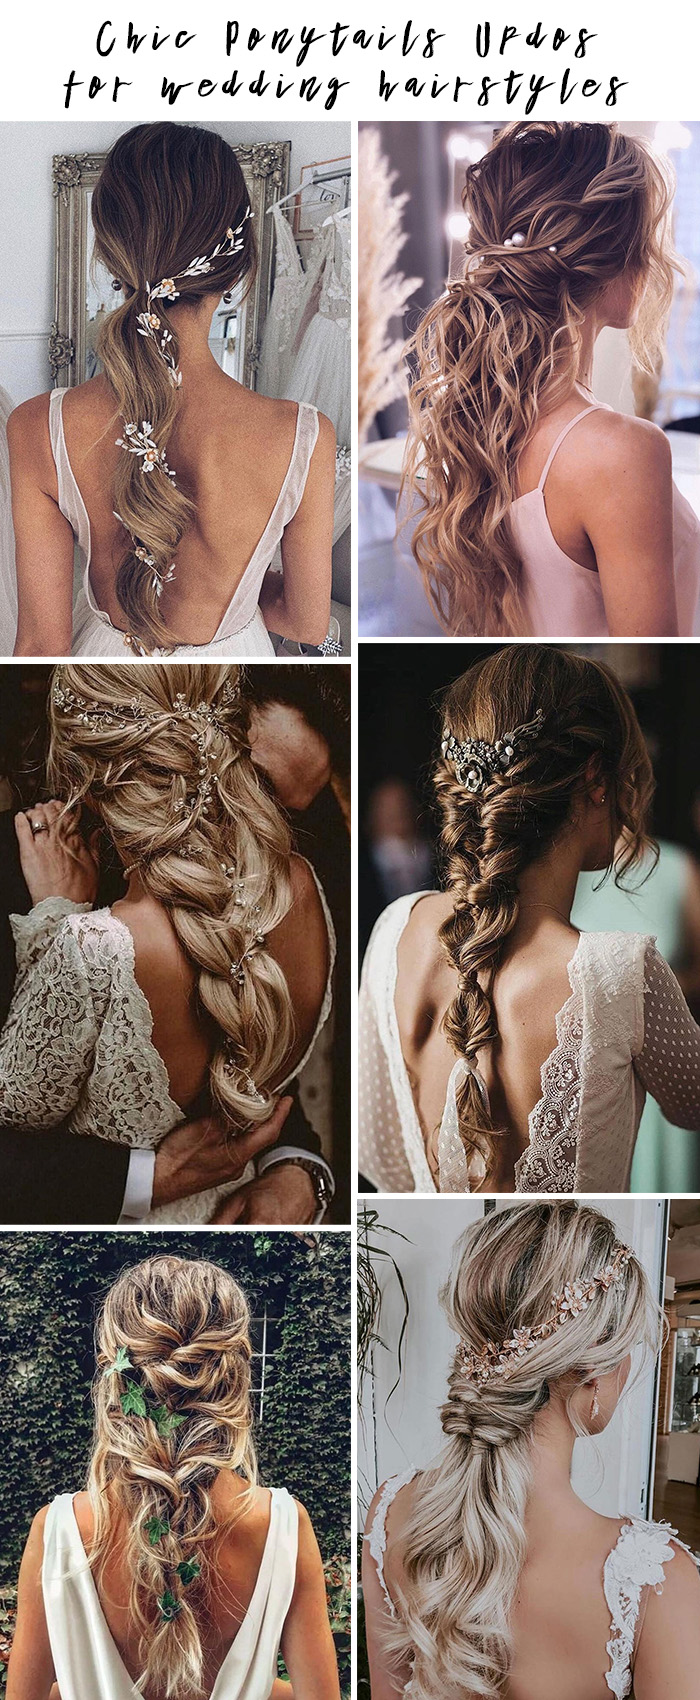 20 chic ponytail updos for wedding hairstyles